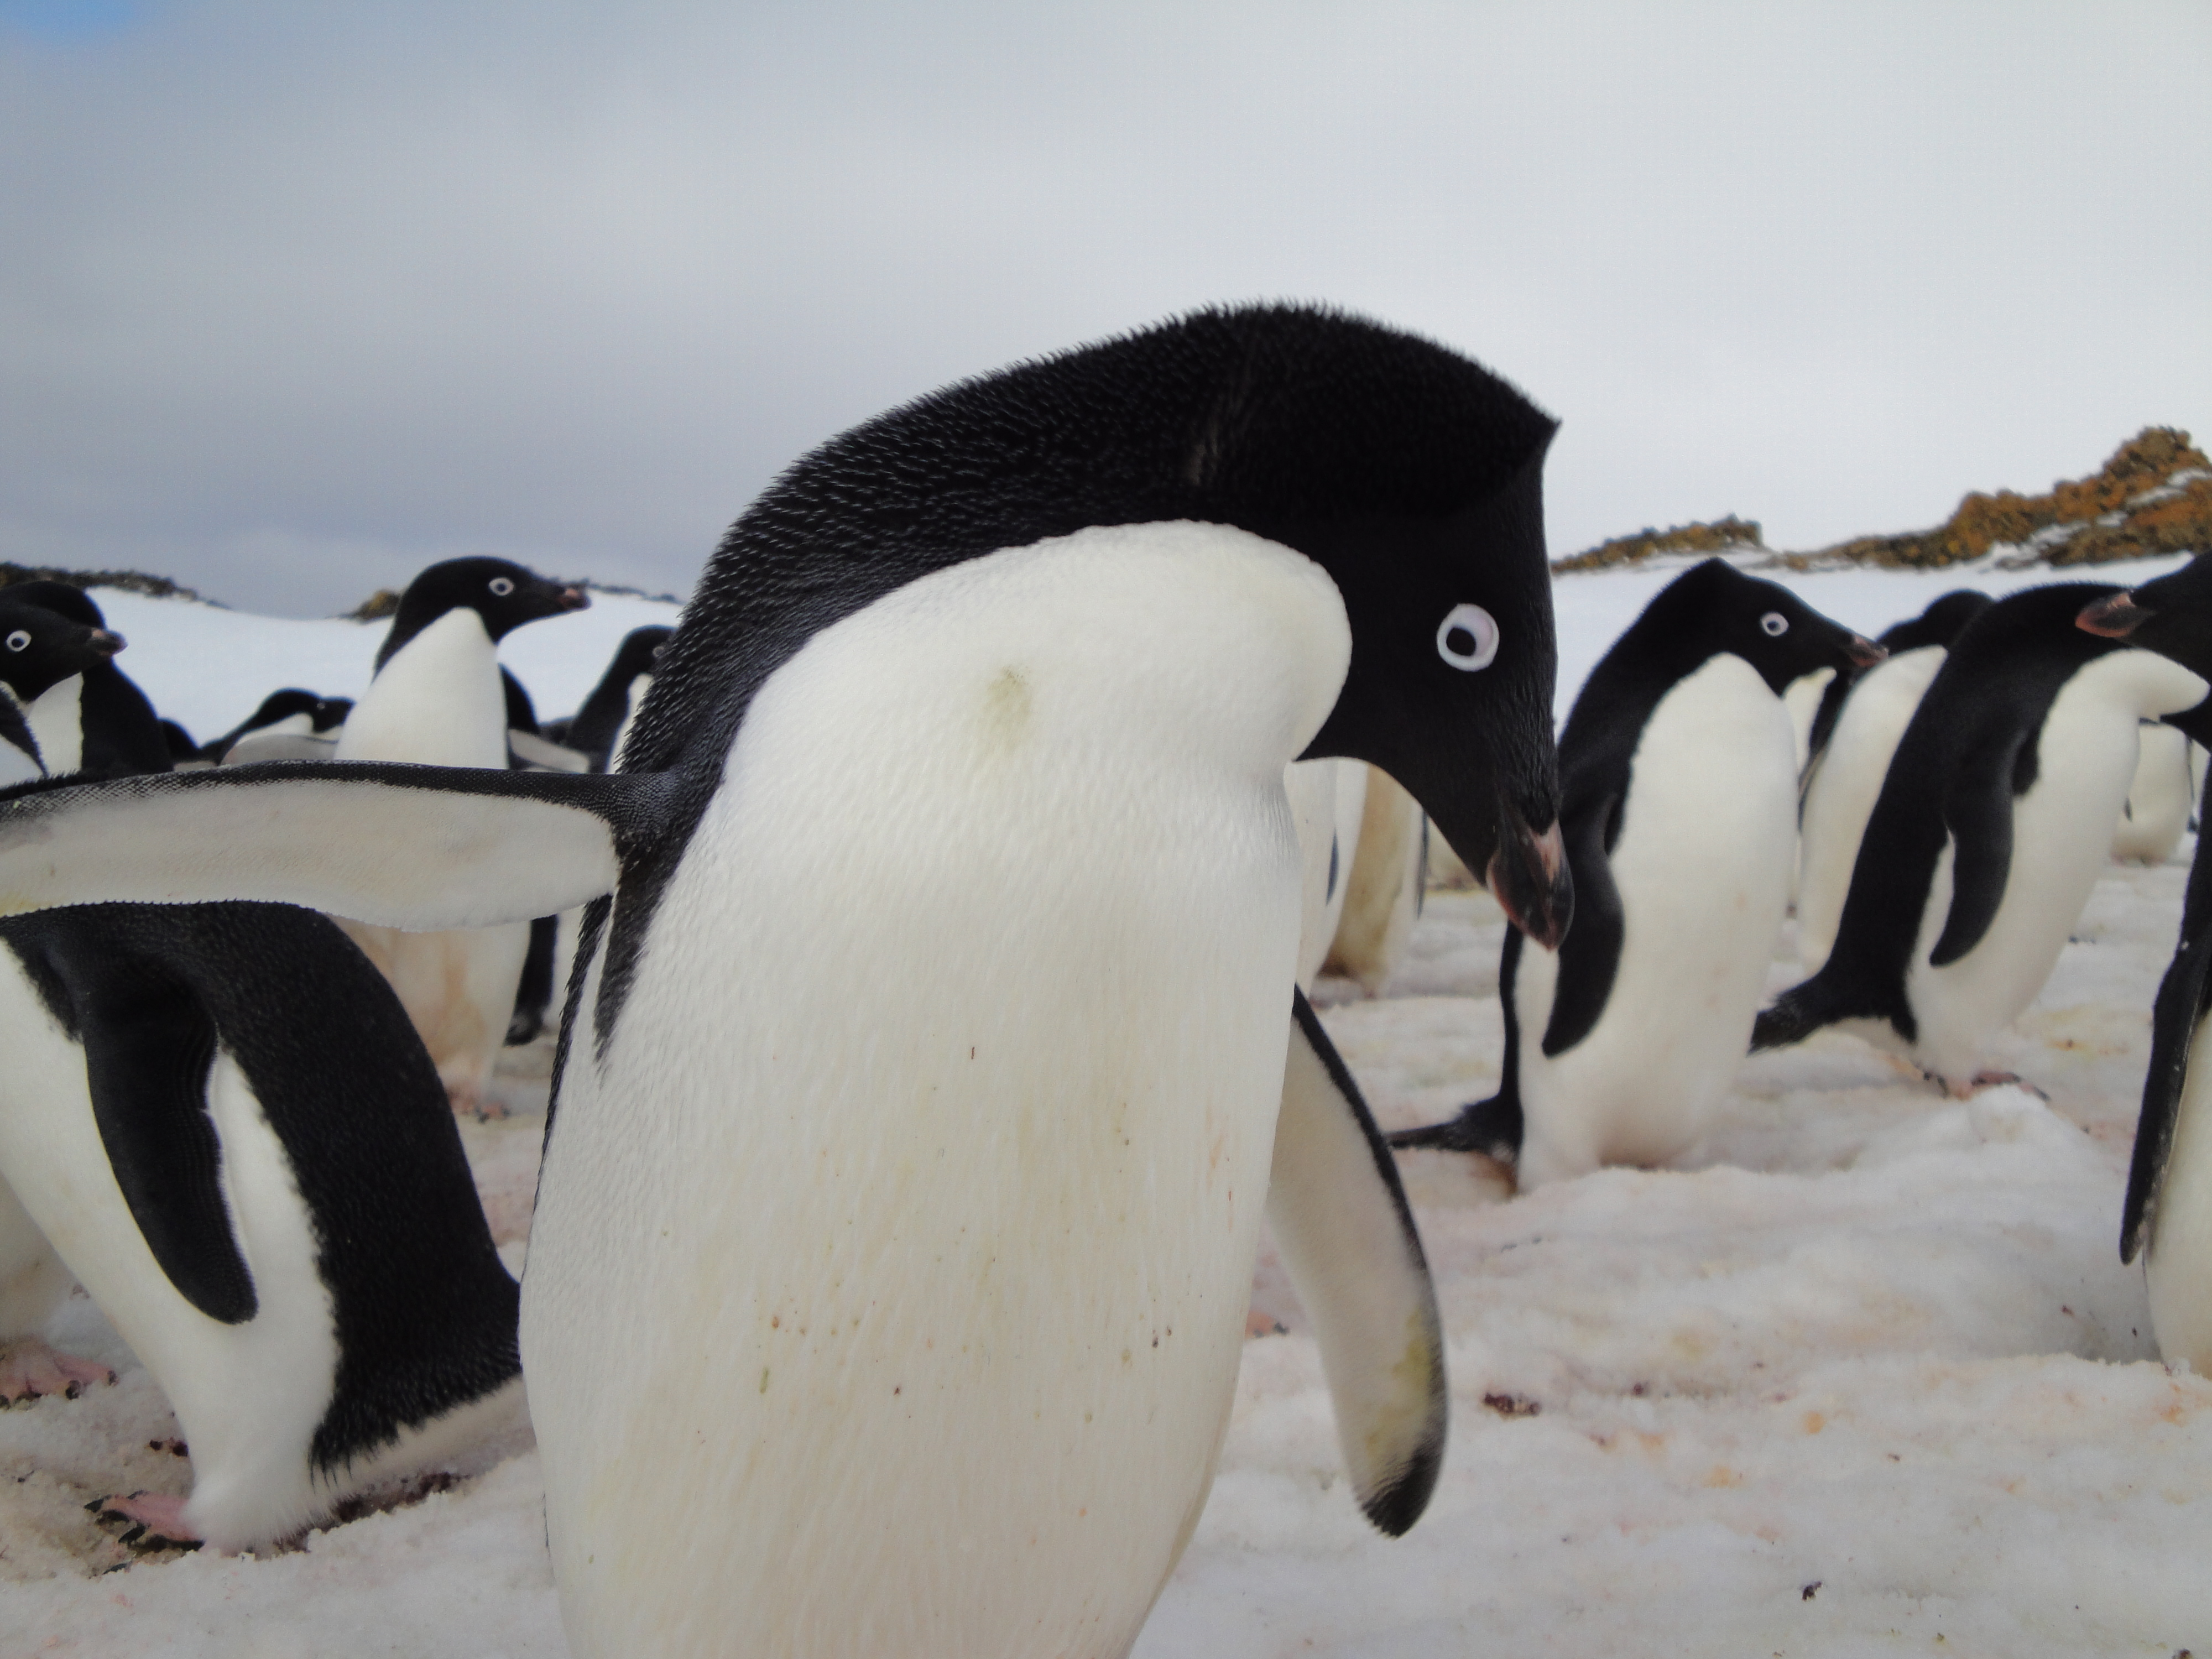 Pictures of animals found in antarctica Polar Bear Facts and Adaptations - Antarctica